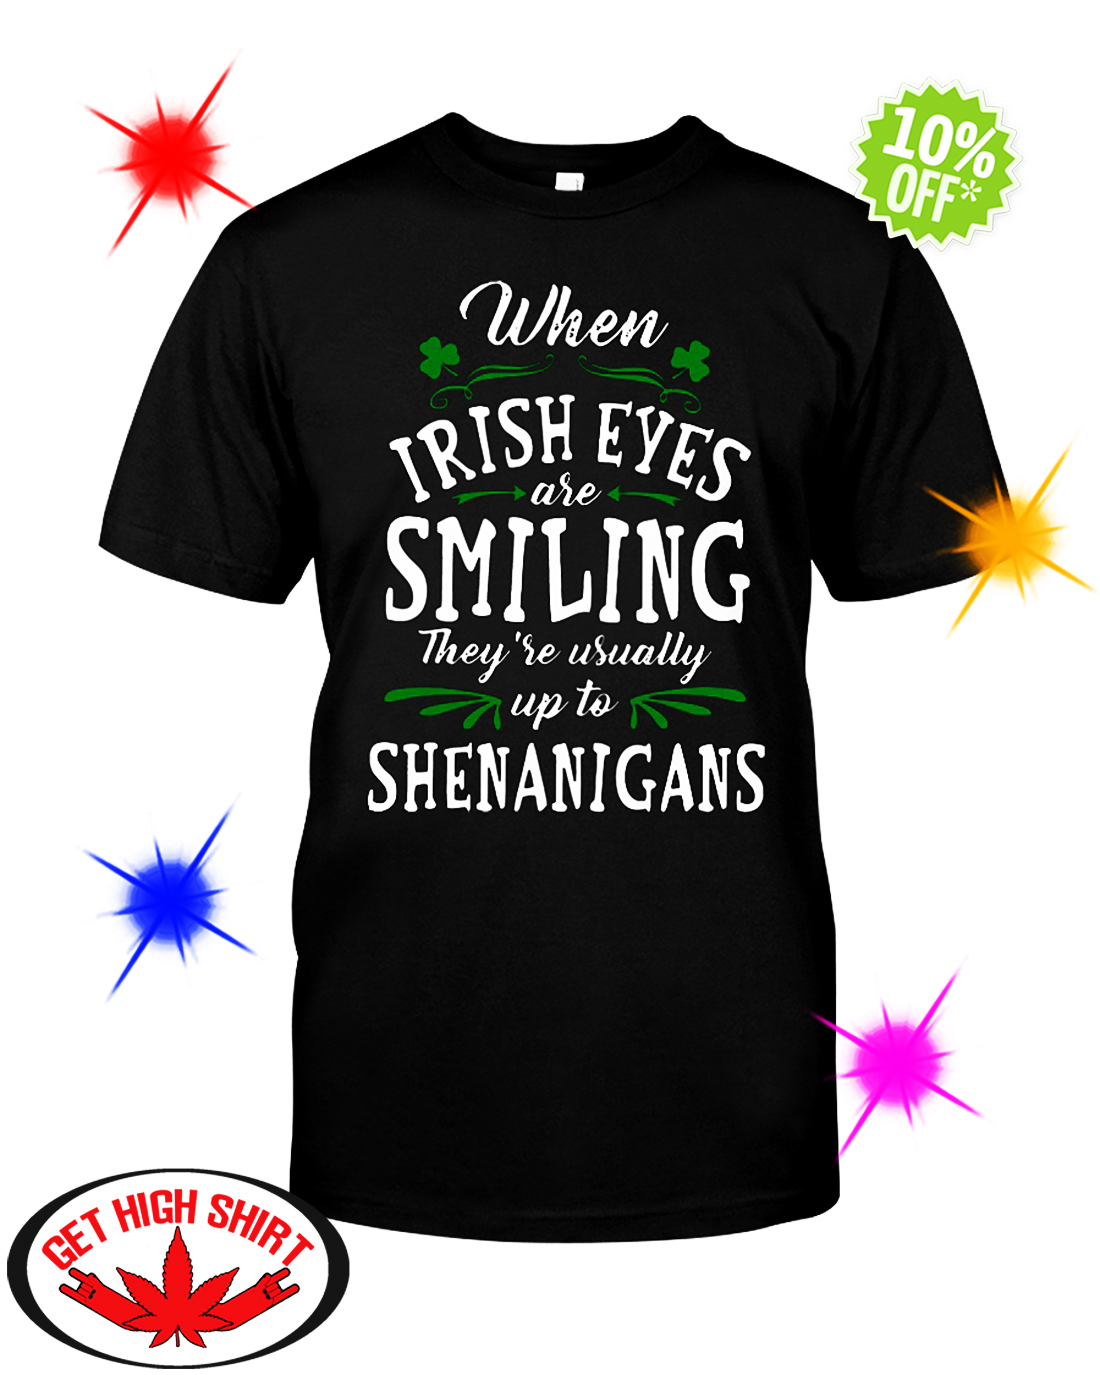 7b6dd96e0 When irish eyes are smiling they're usually up to Shenanigans shirt